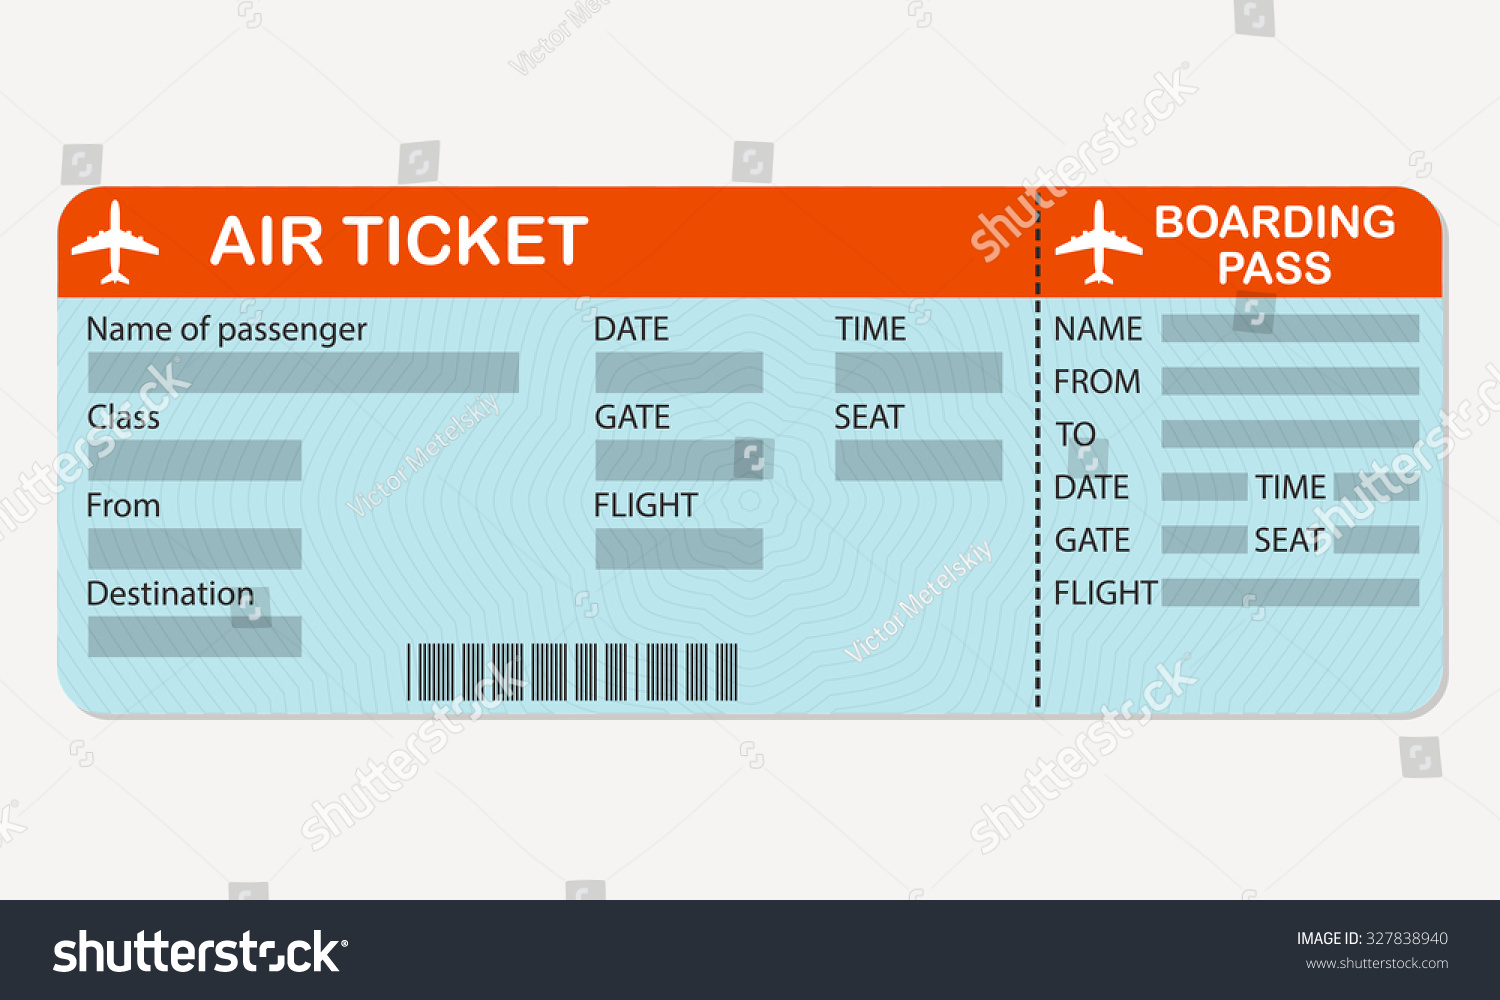 Blank Airline Ticket - FREE DOWNLOAD - Champlain College ...